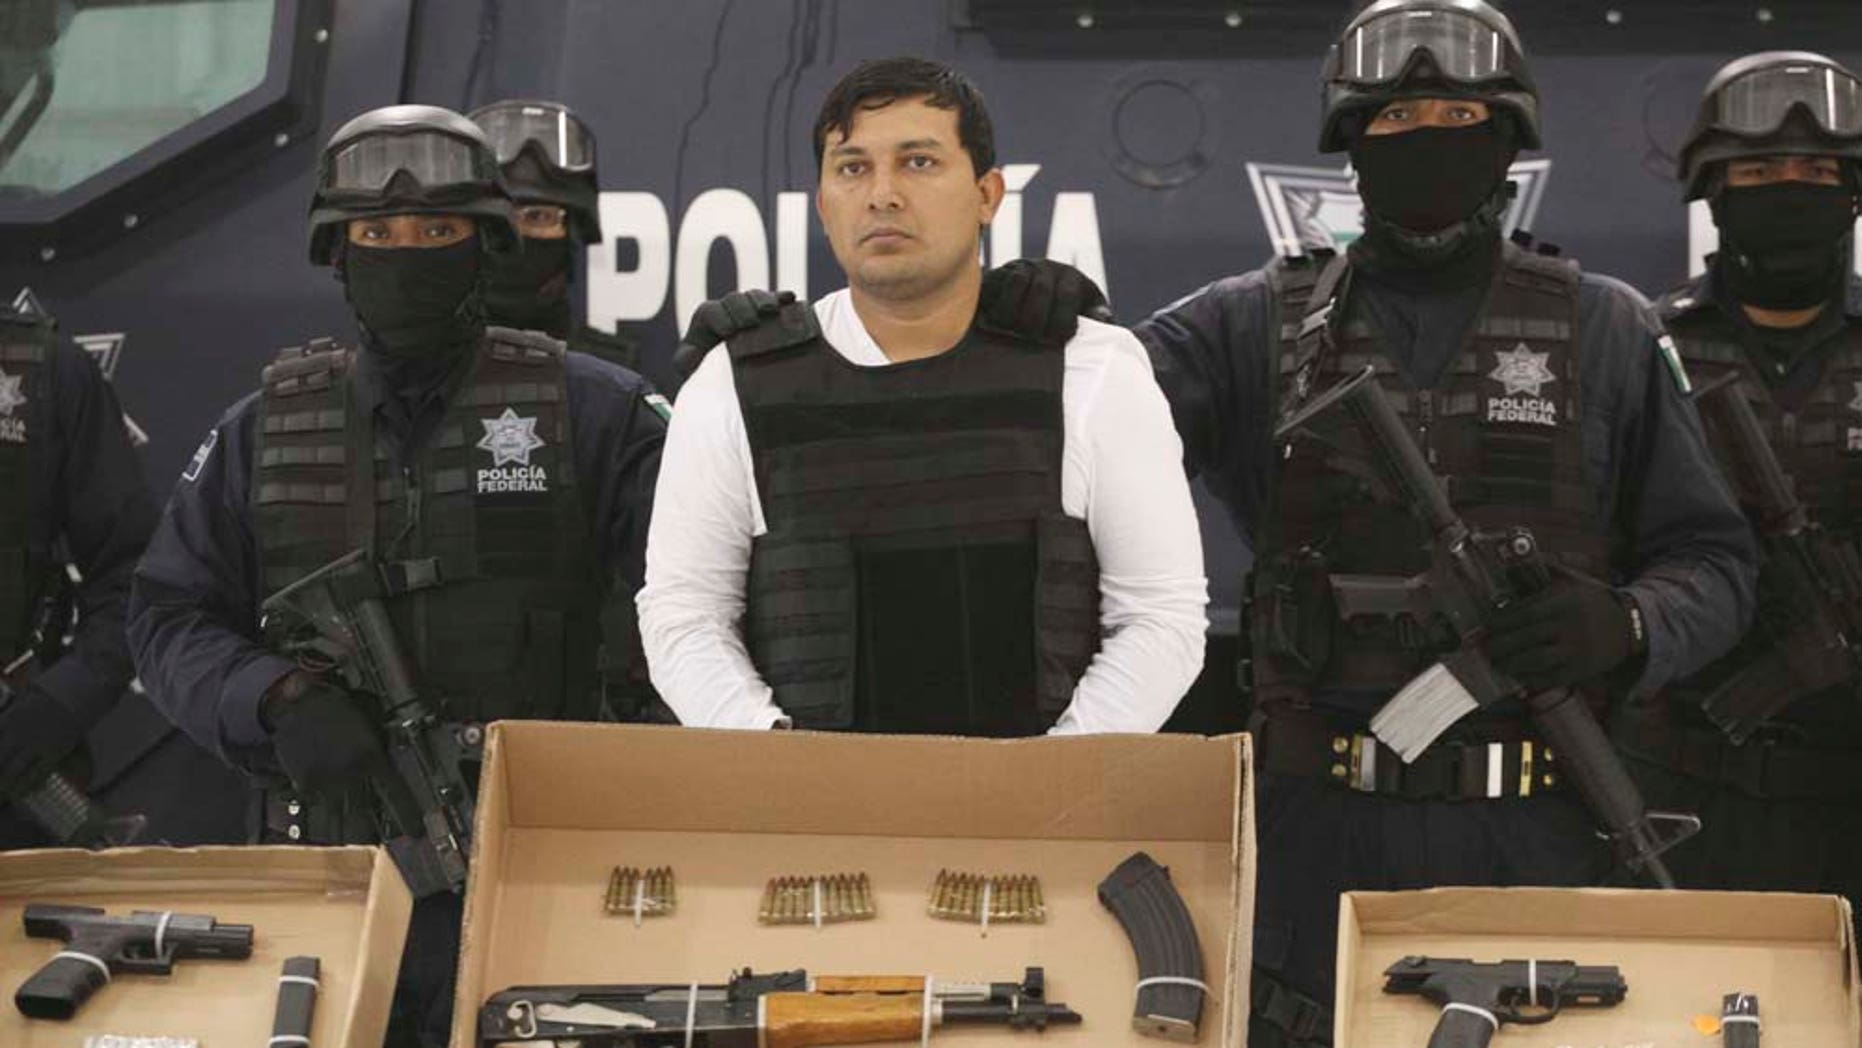 """Federal Police agents present Jesus Enrique Aguilar, alias """"El Mamito"""", center, to the media in Mexico City, Monday July 4, 2011. Police believe Aguilar is connected with the killing of a U.S. Immigration and Customs Enforcement agent. Aguilar is a former member of the Mexican Army and allegedly a co-founder of the Zetas drug cartel, according to authorities. (AP Photo/Alexandre Meneghini)"""